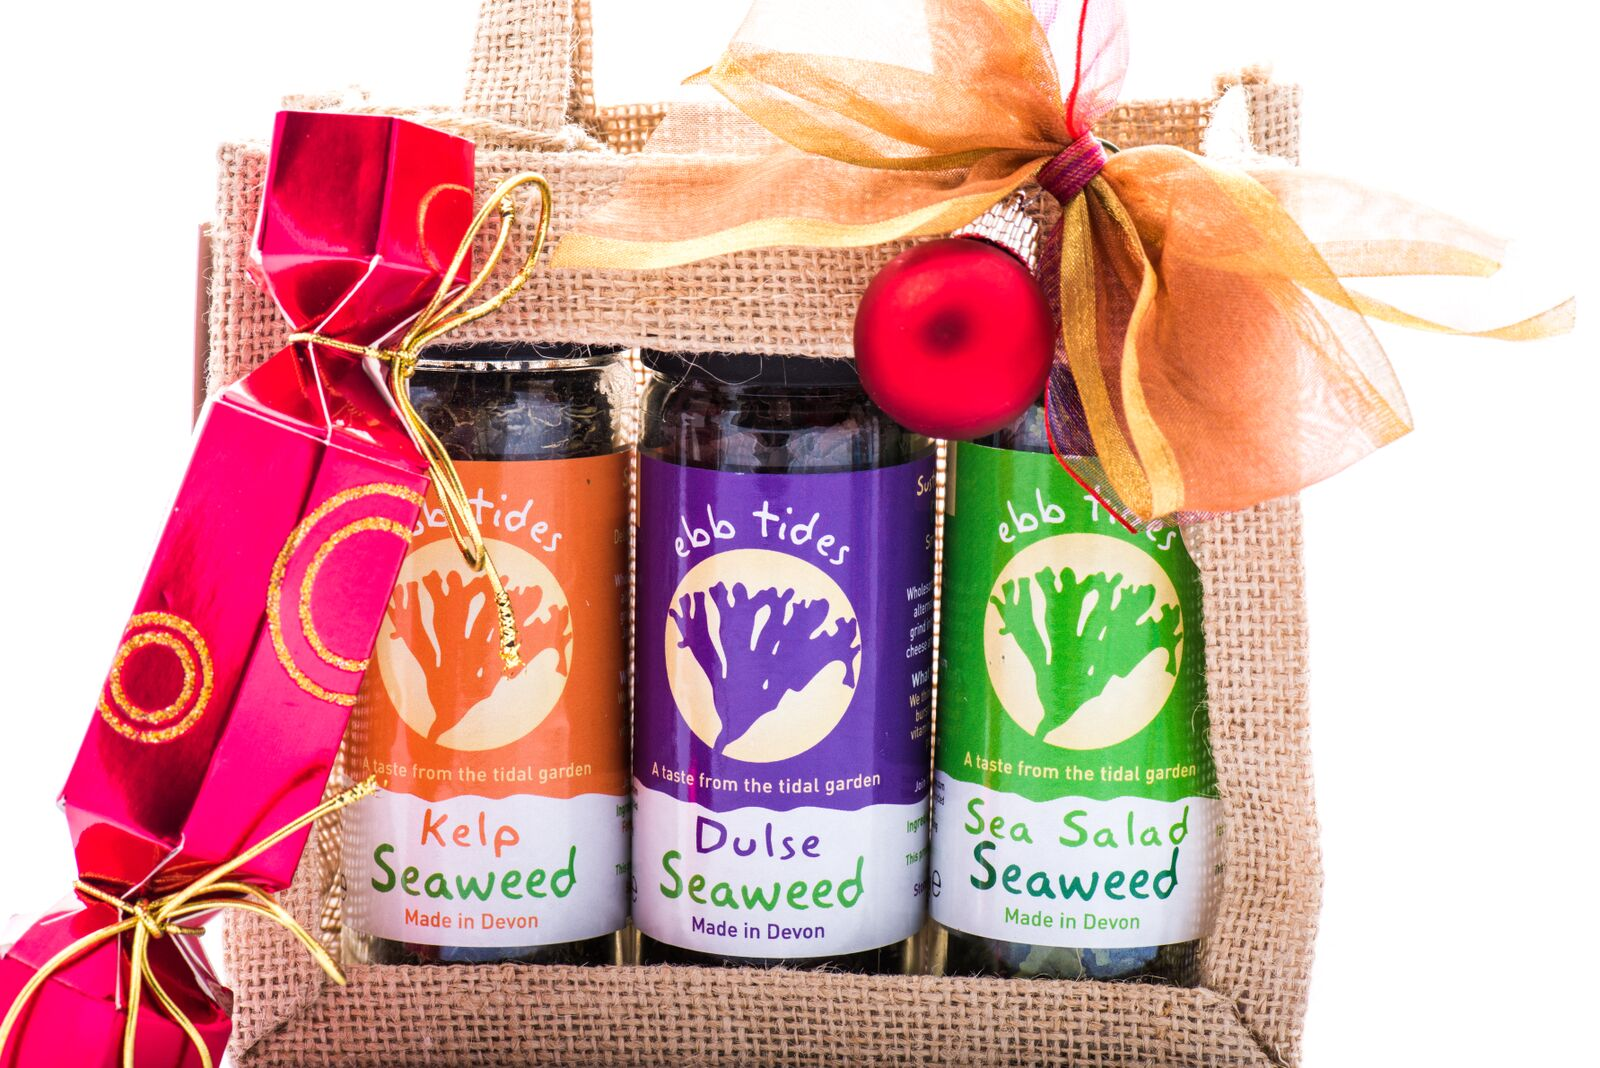 Ideal Christmas gift for vegan friends, girlfriends, boyfriends and family buy Ebb Tides Seaweed Shaker Gift Bag